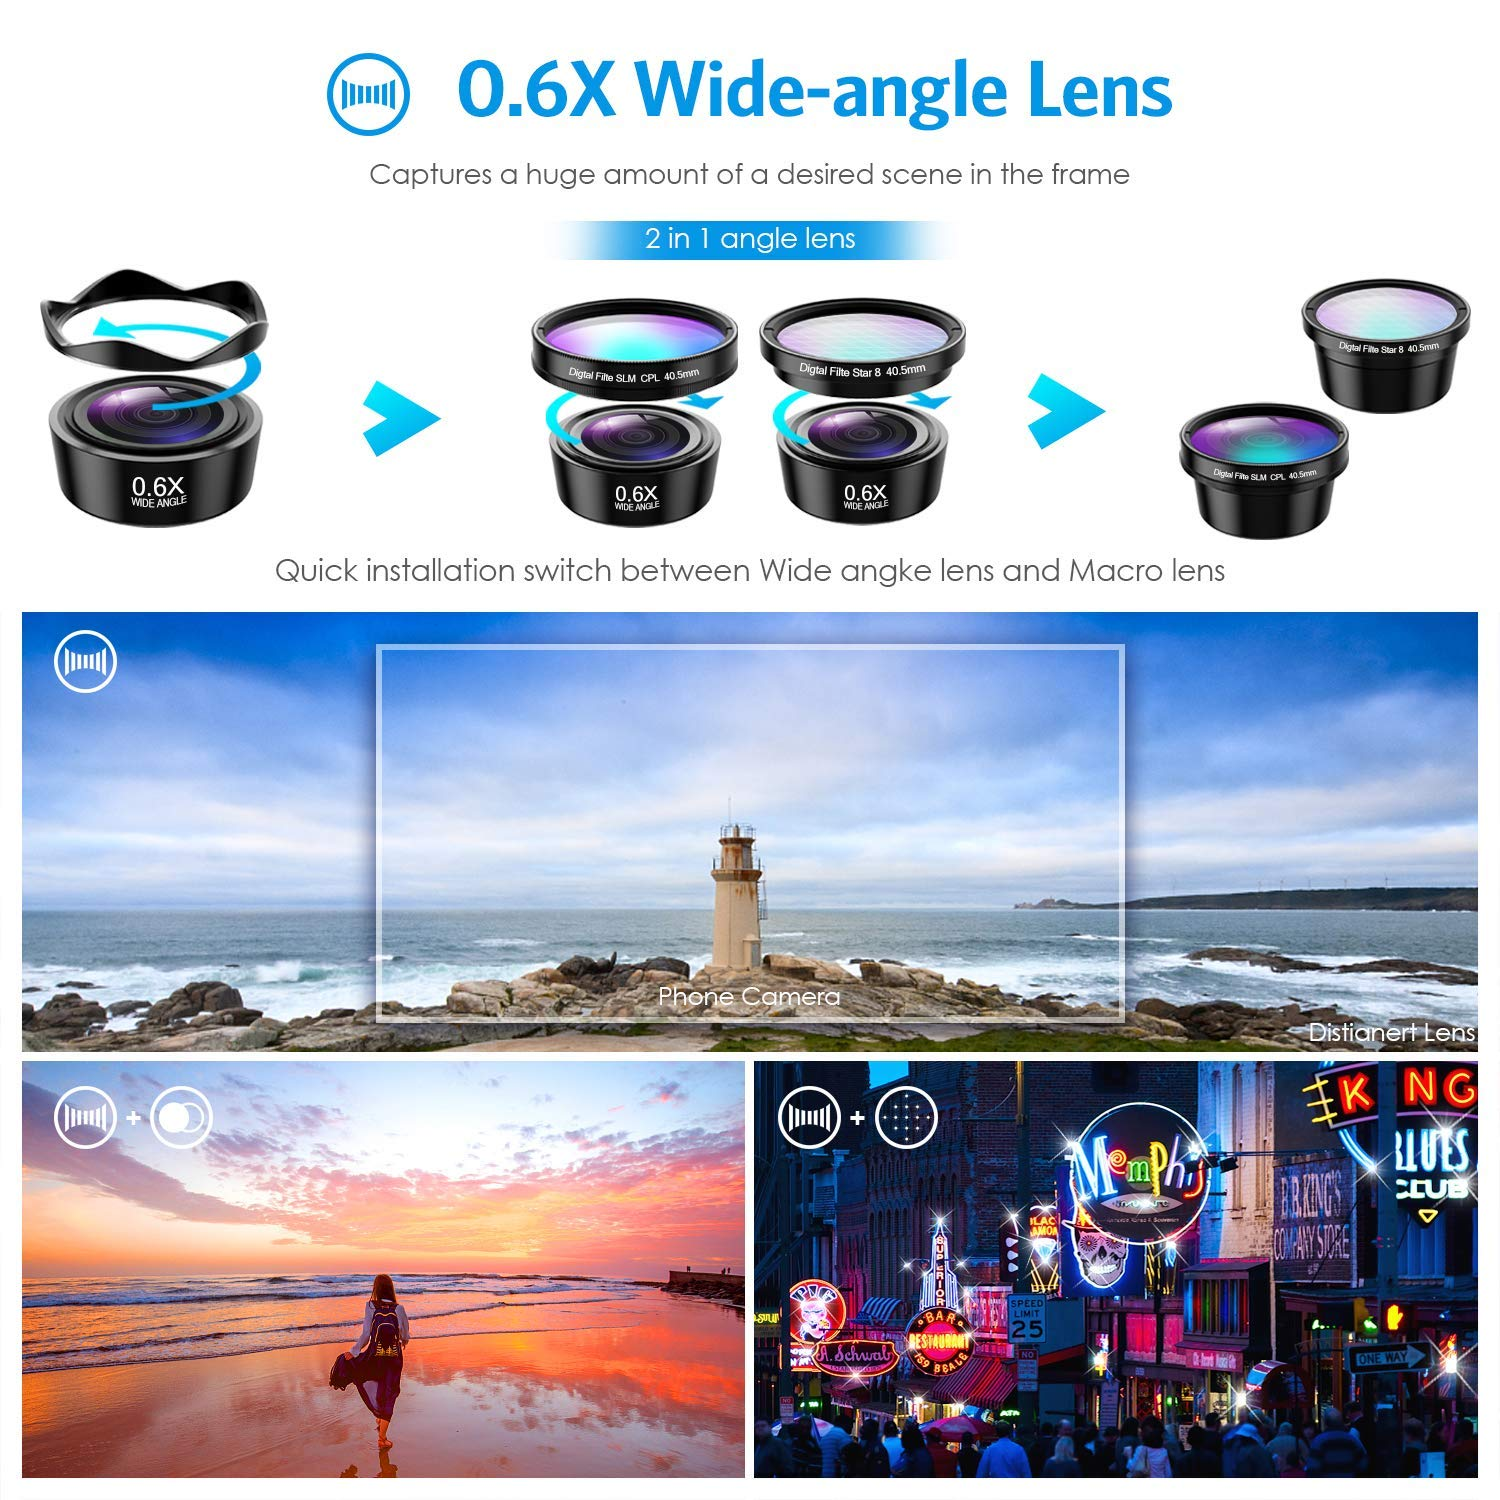 (Upgraded Version) Phone Camera Lens, 5 in 1 Cell Phone Lens Kit, Macro Lens, Wide Angle Lens, Fisheye Lens, CPL, Starburst Lens, with Storage Tube, for iPhone X 8 7, Smartphones by Criacr